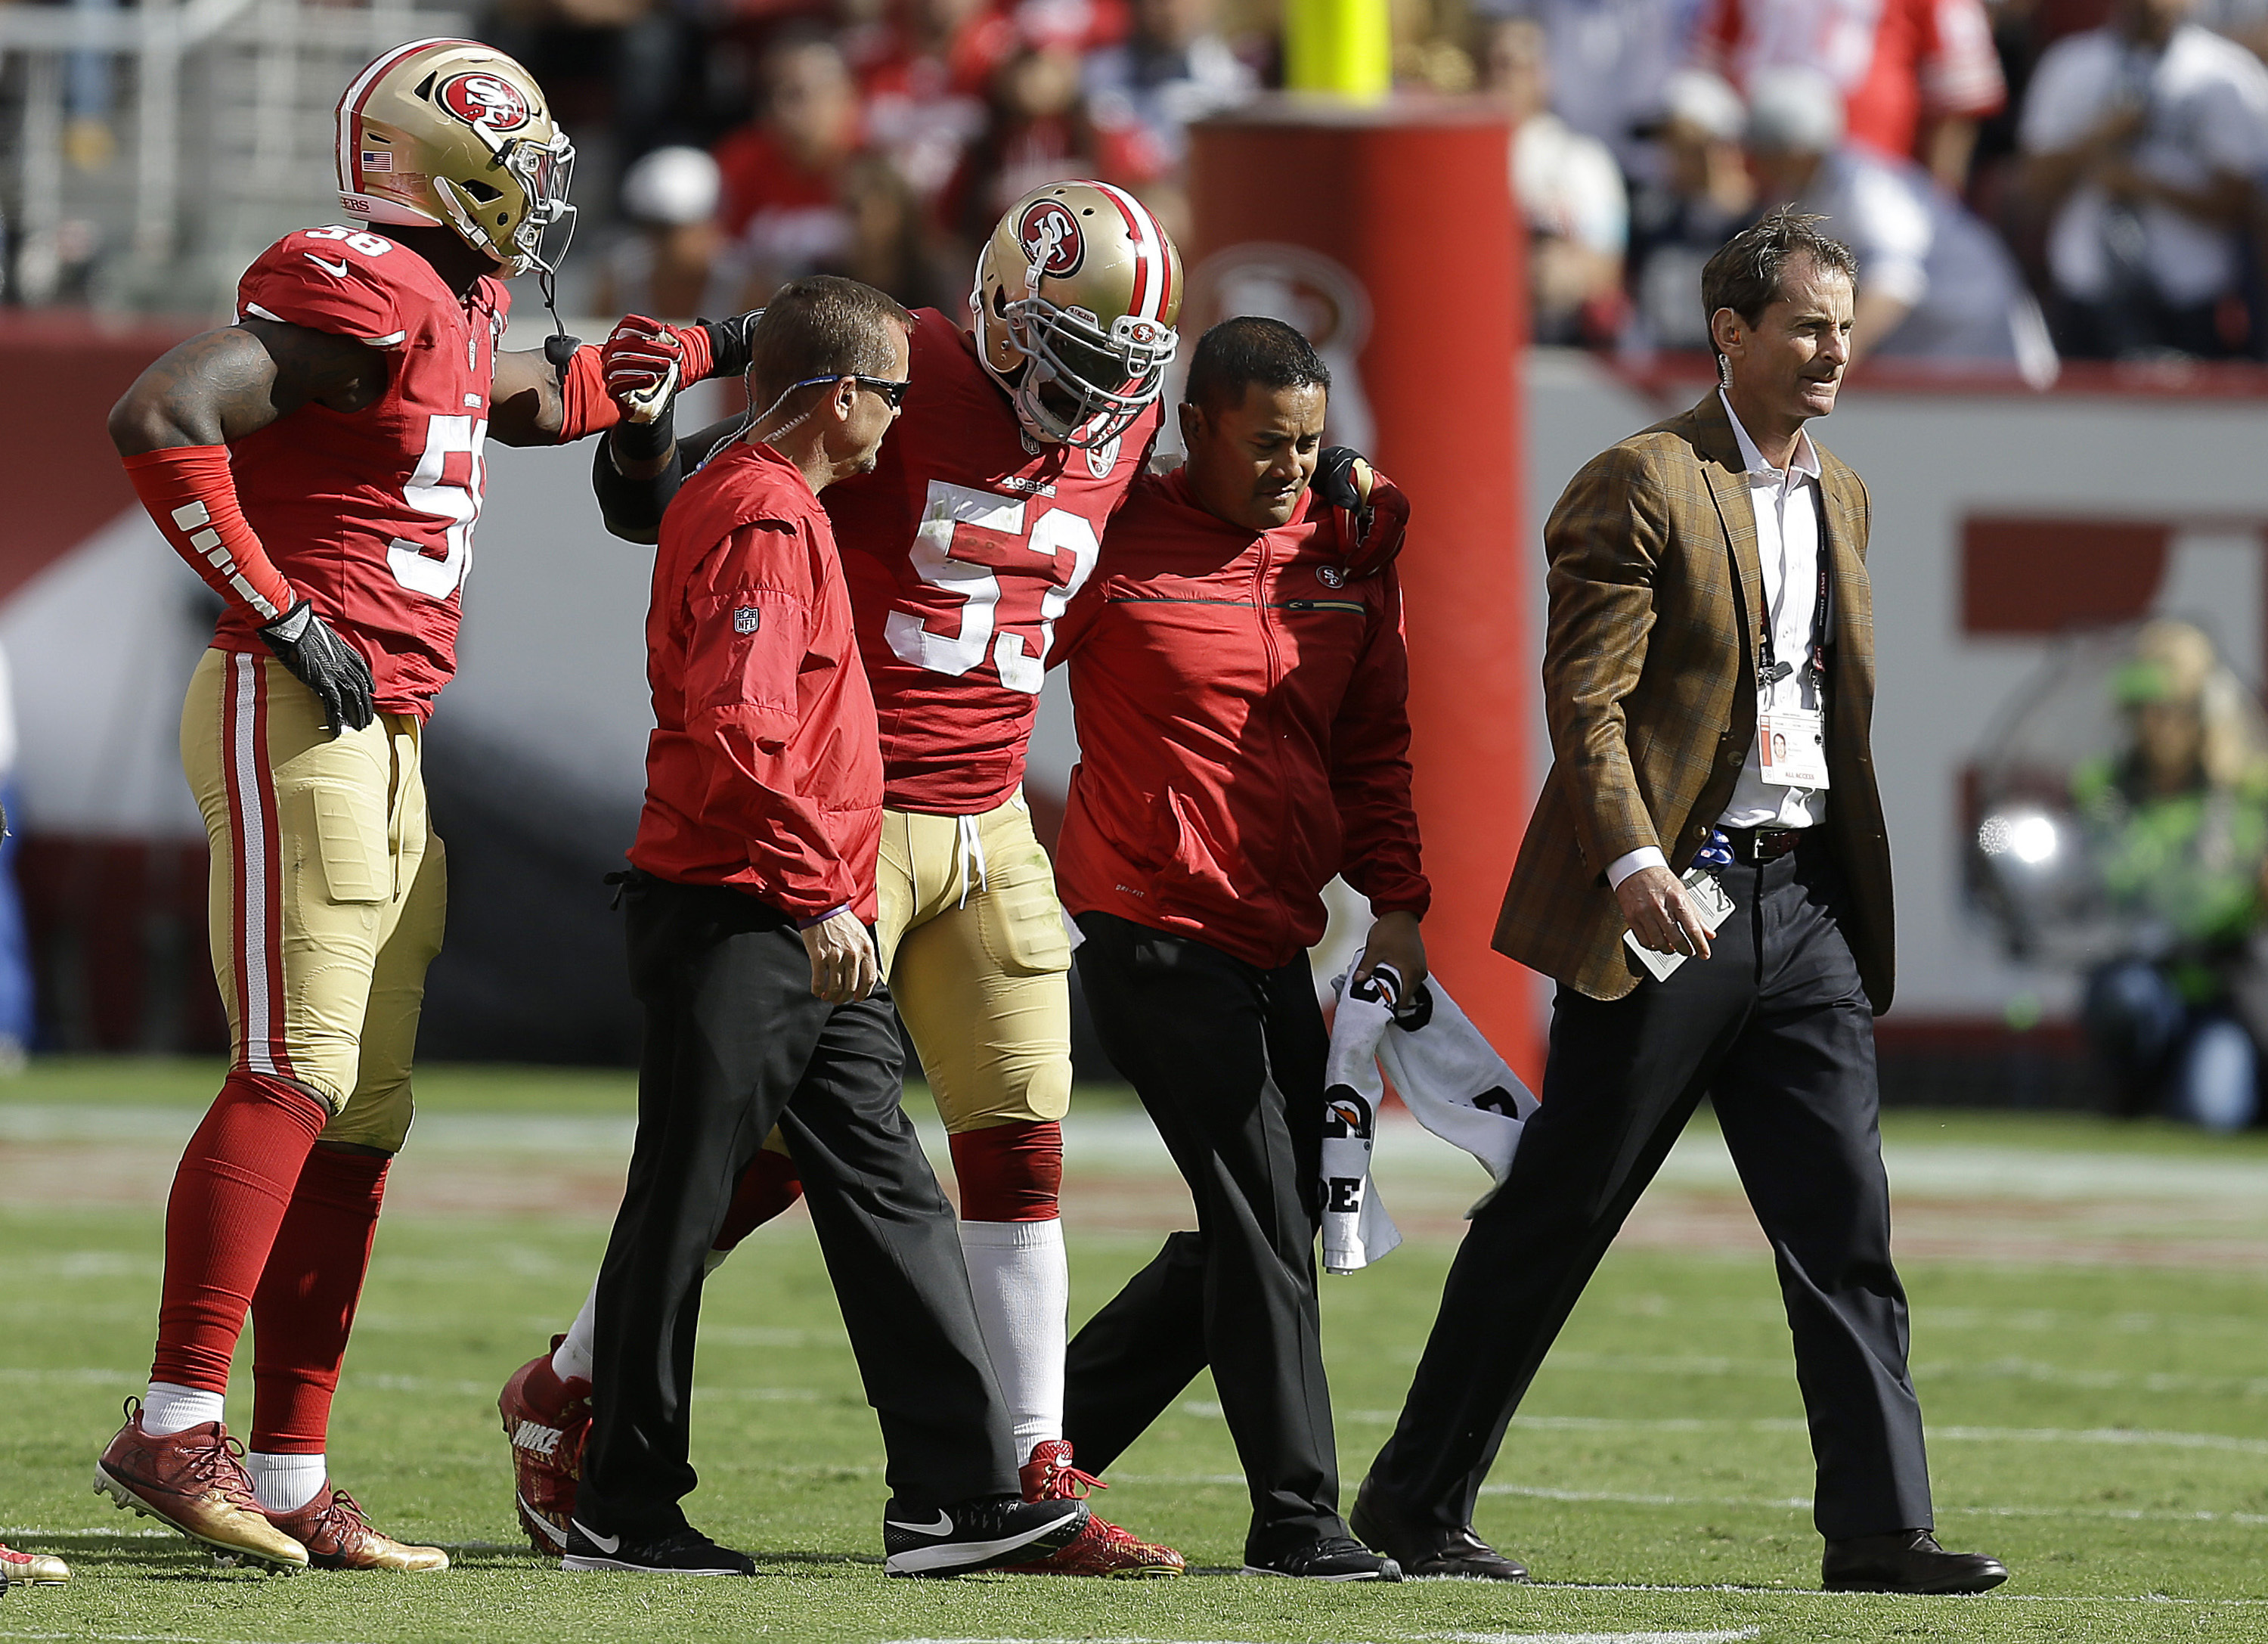 San Francisco 49ers linebacker NaVorro Bowman (53) is helped off the field during the second half of an NFL football game against the Dallas Cowboys in Santa Clara, Calif., Sunday, Oct. 2, 2016. (AP Photo/Ben Margot)